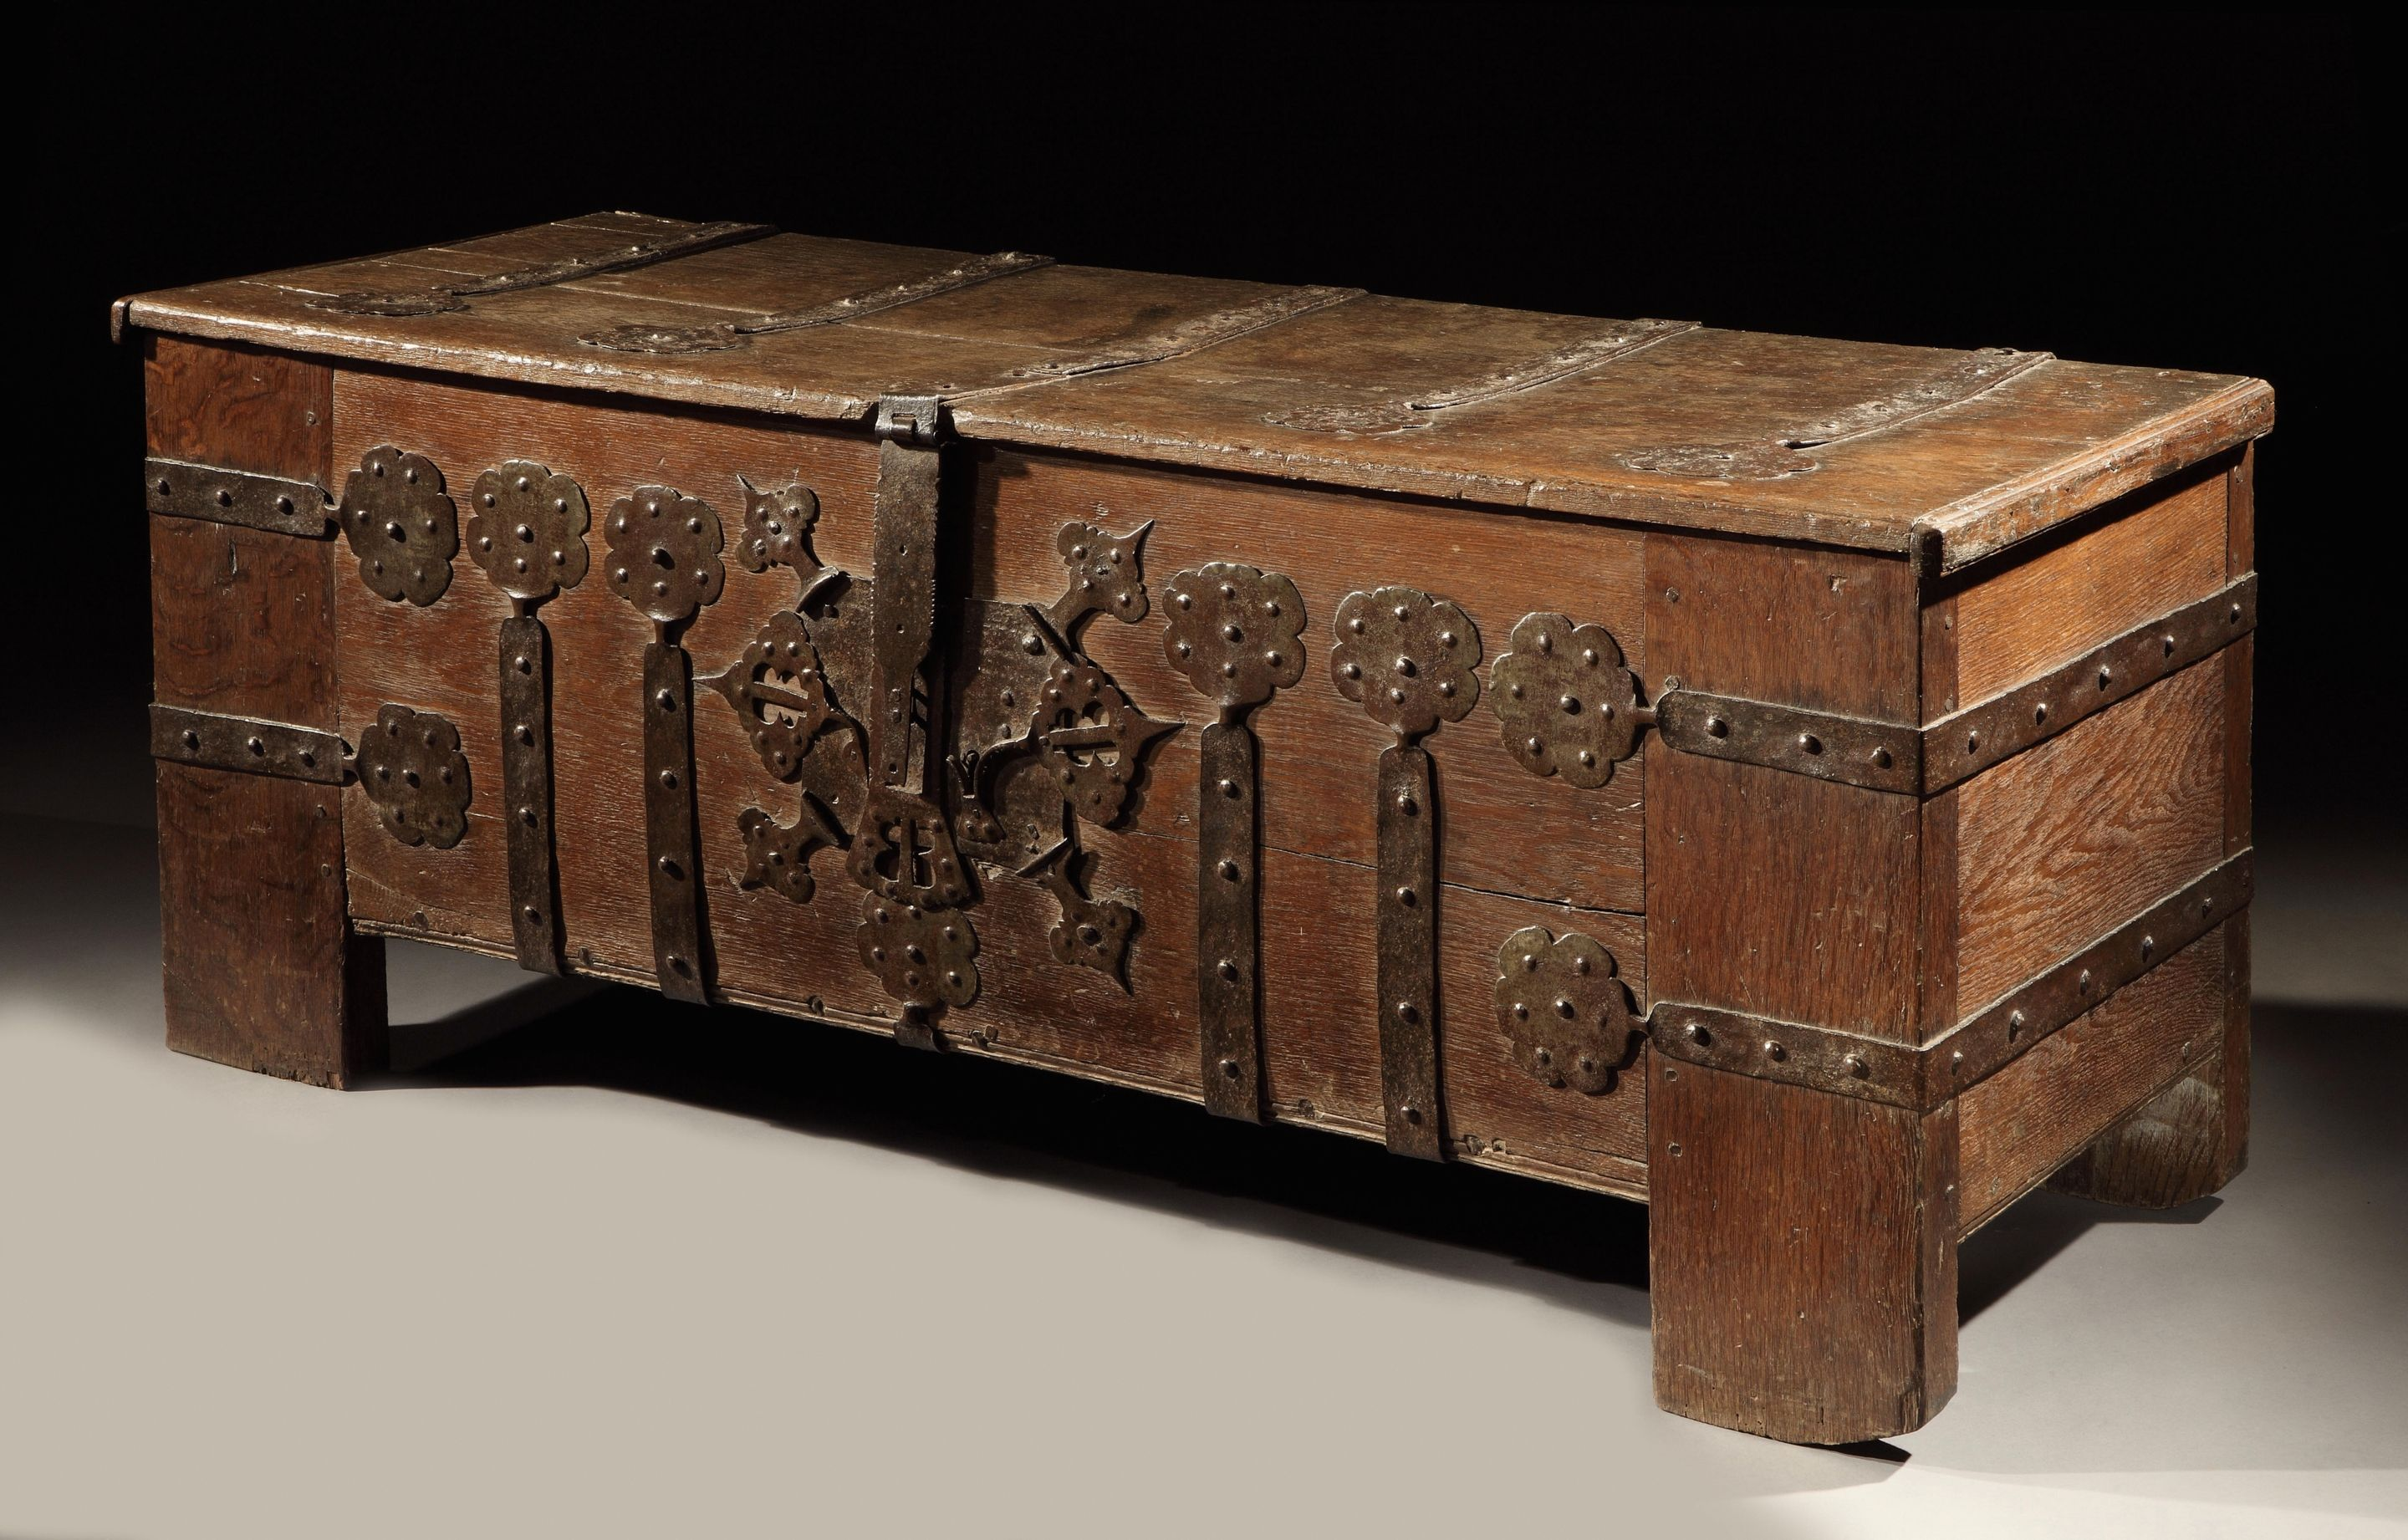 Uncategorized Chest Trunk Furniture antique oak chest an early 16th century westphalian iron banded oak